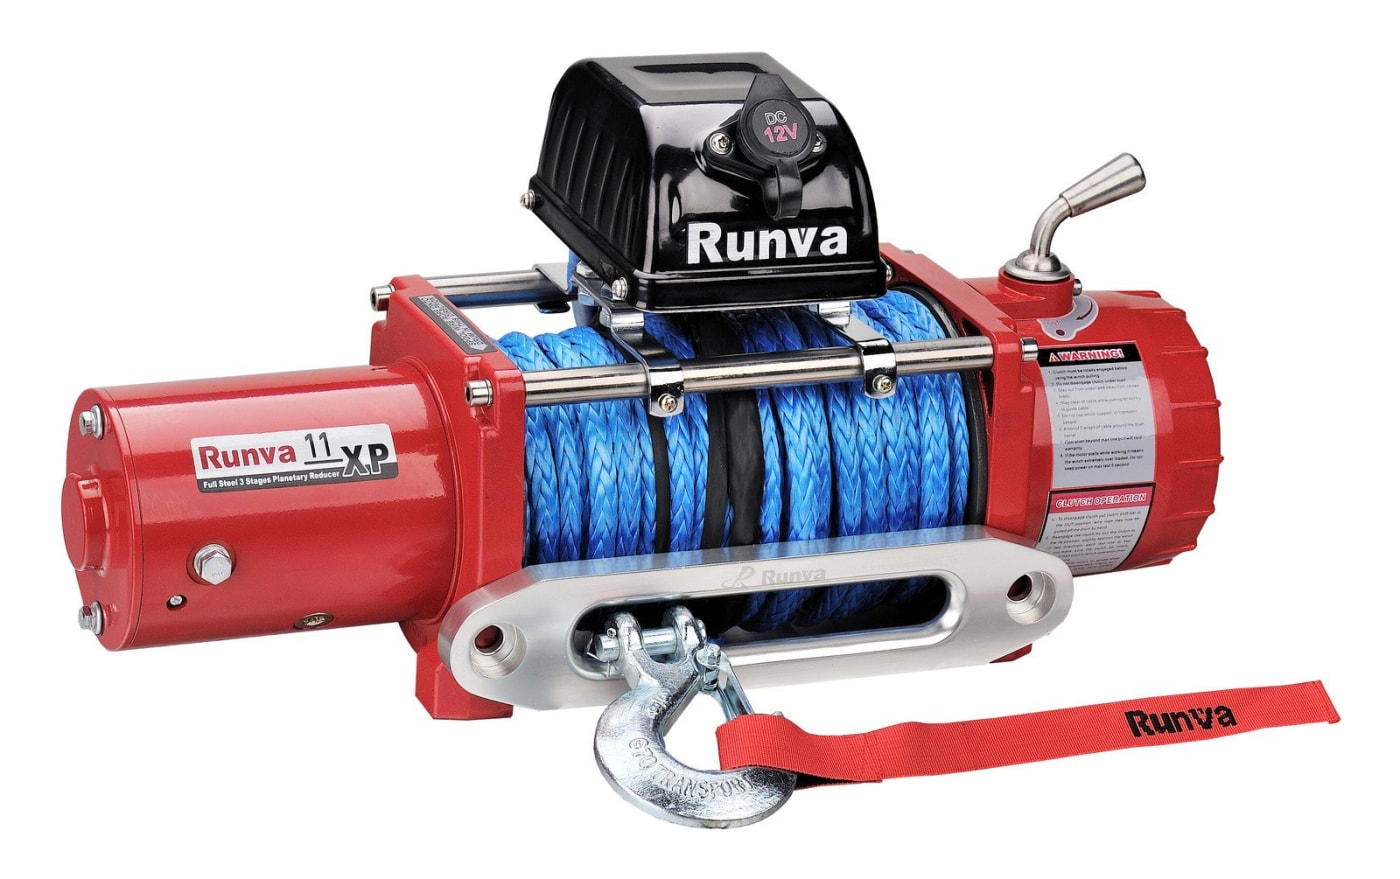 runva-11xp-24v-with-synthetic-rope-ip67-motor-red